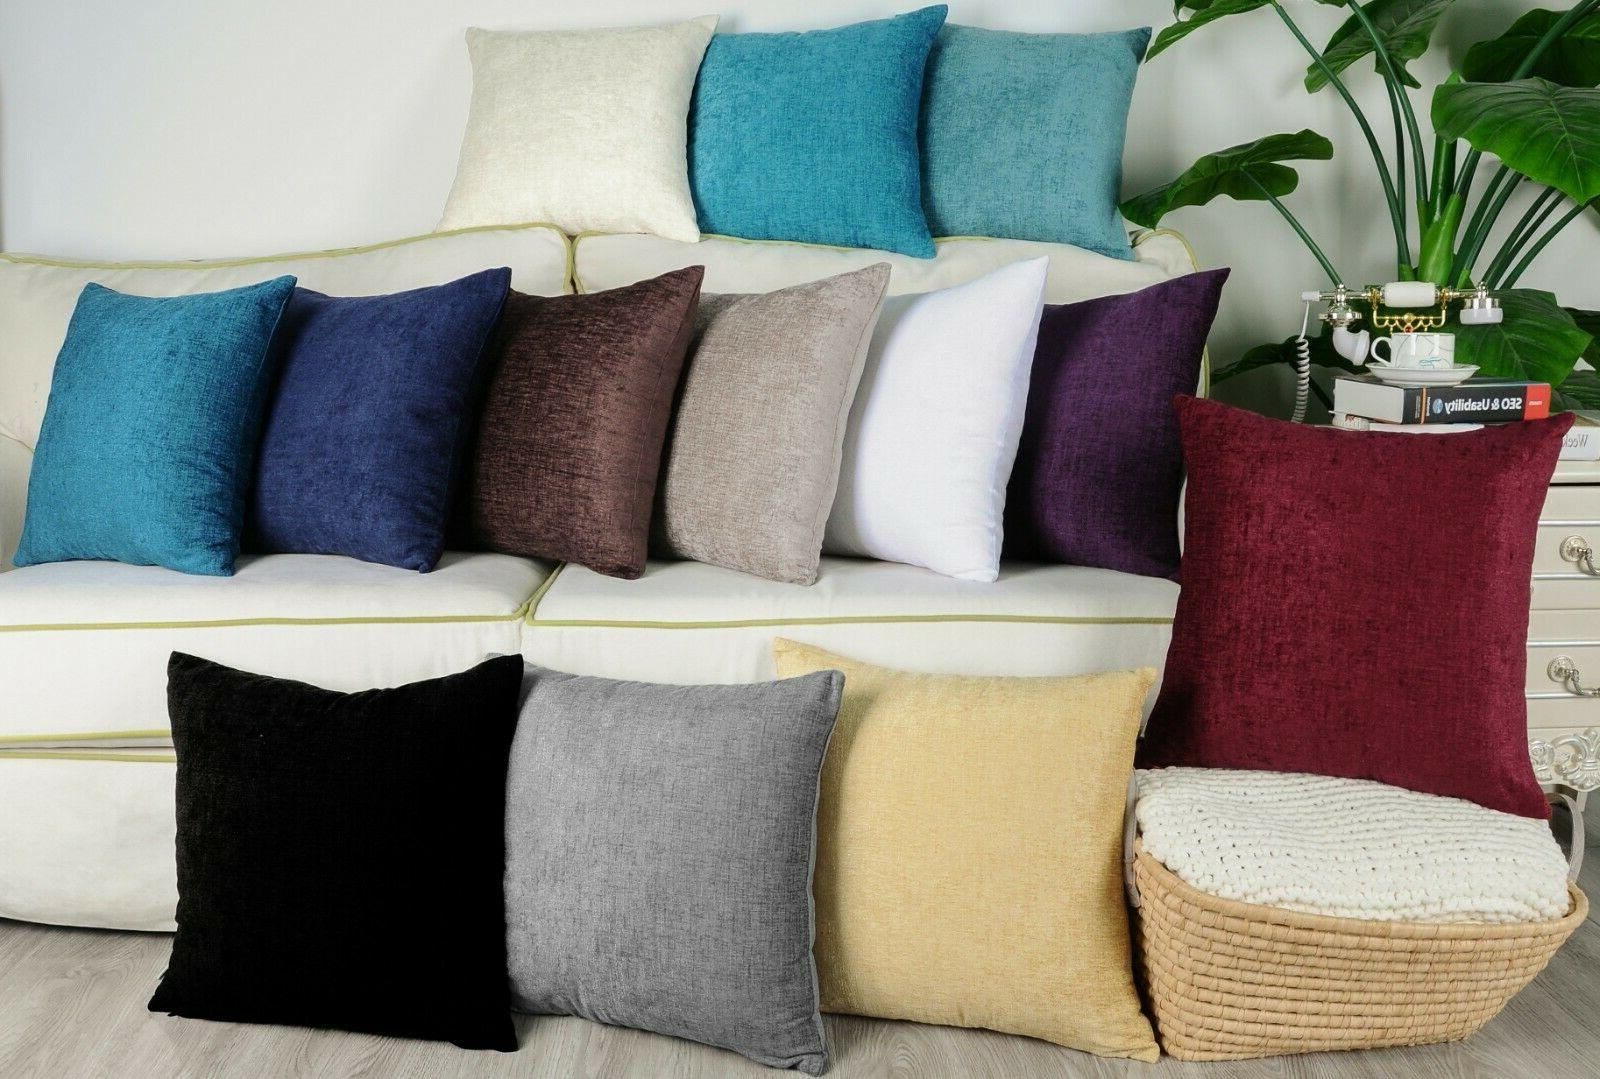 cushions covers throw pillows shell sofa decor